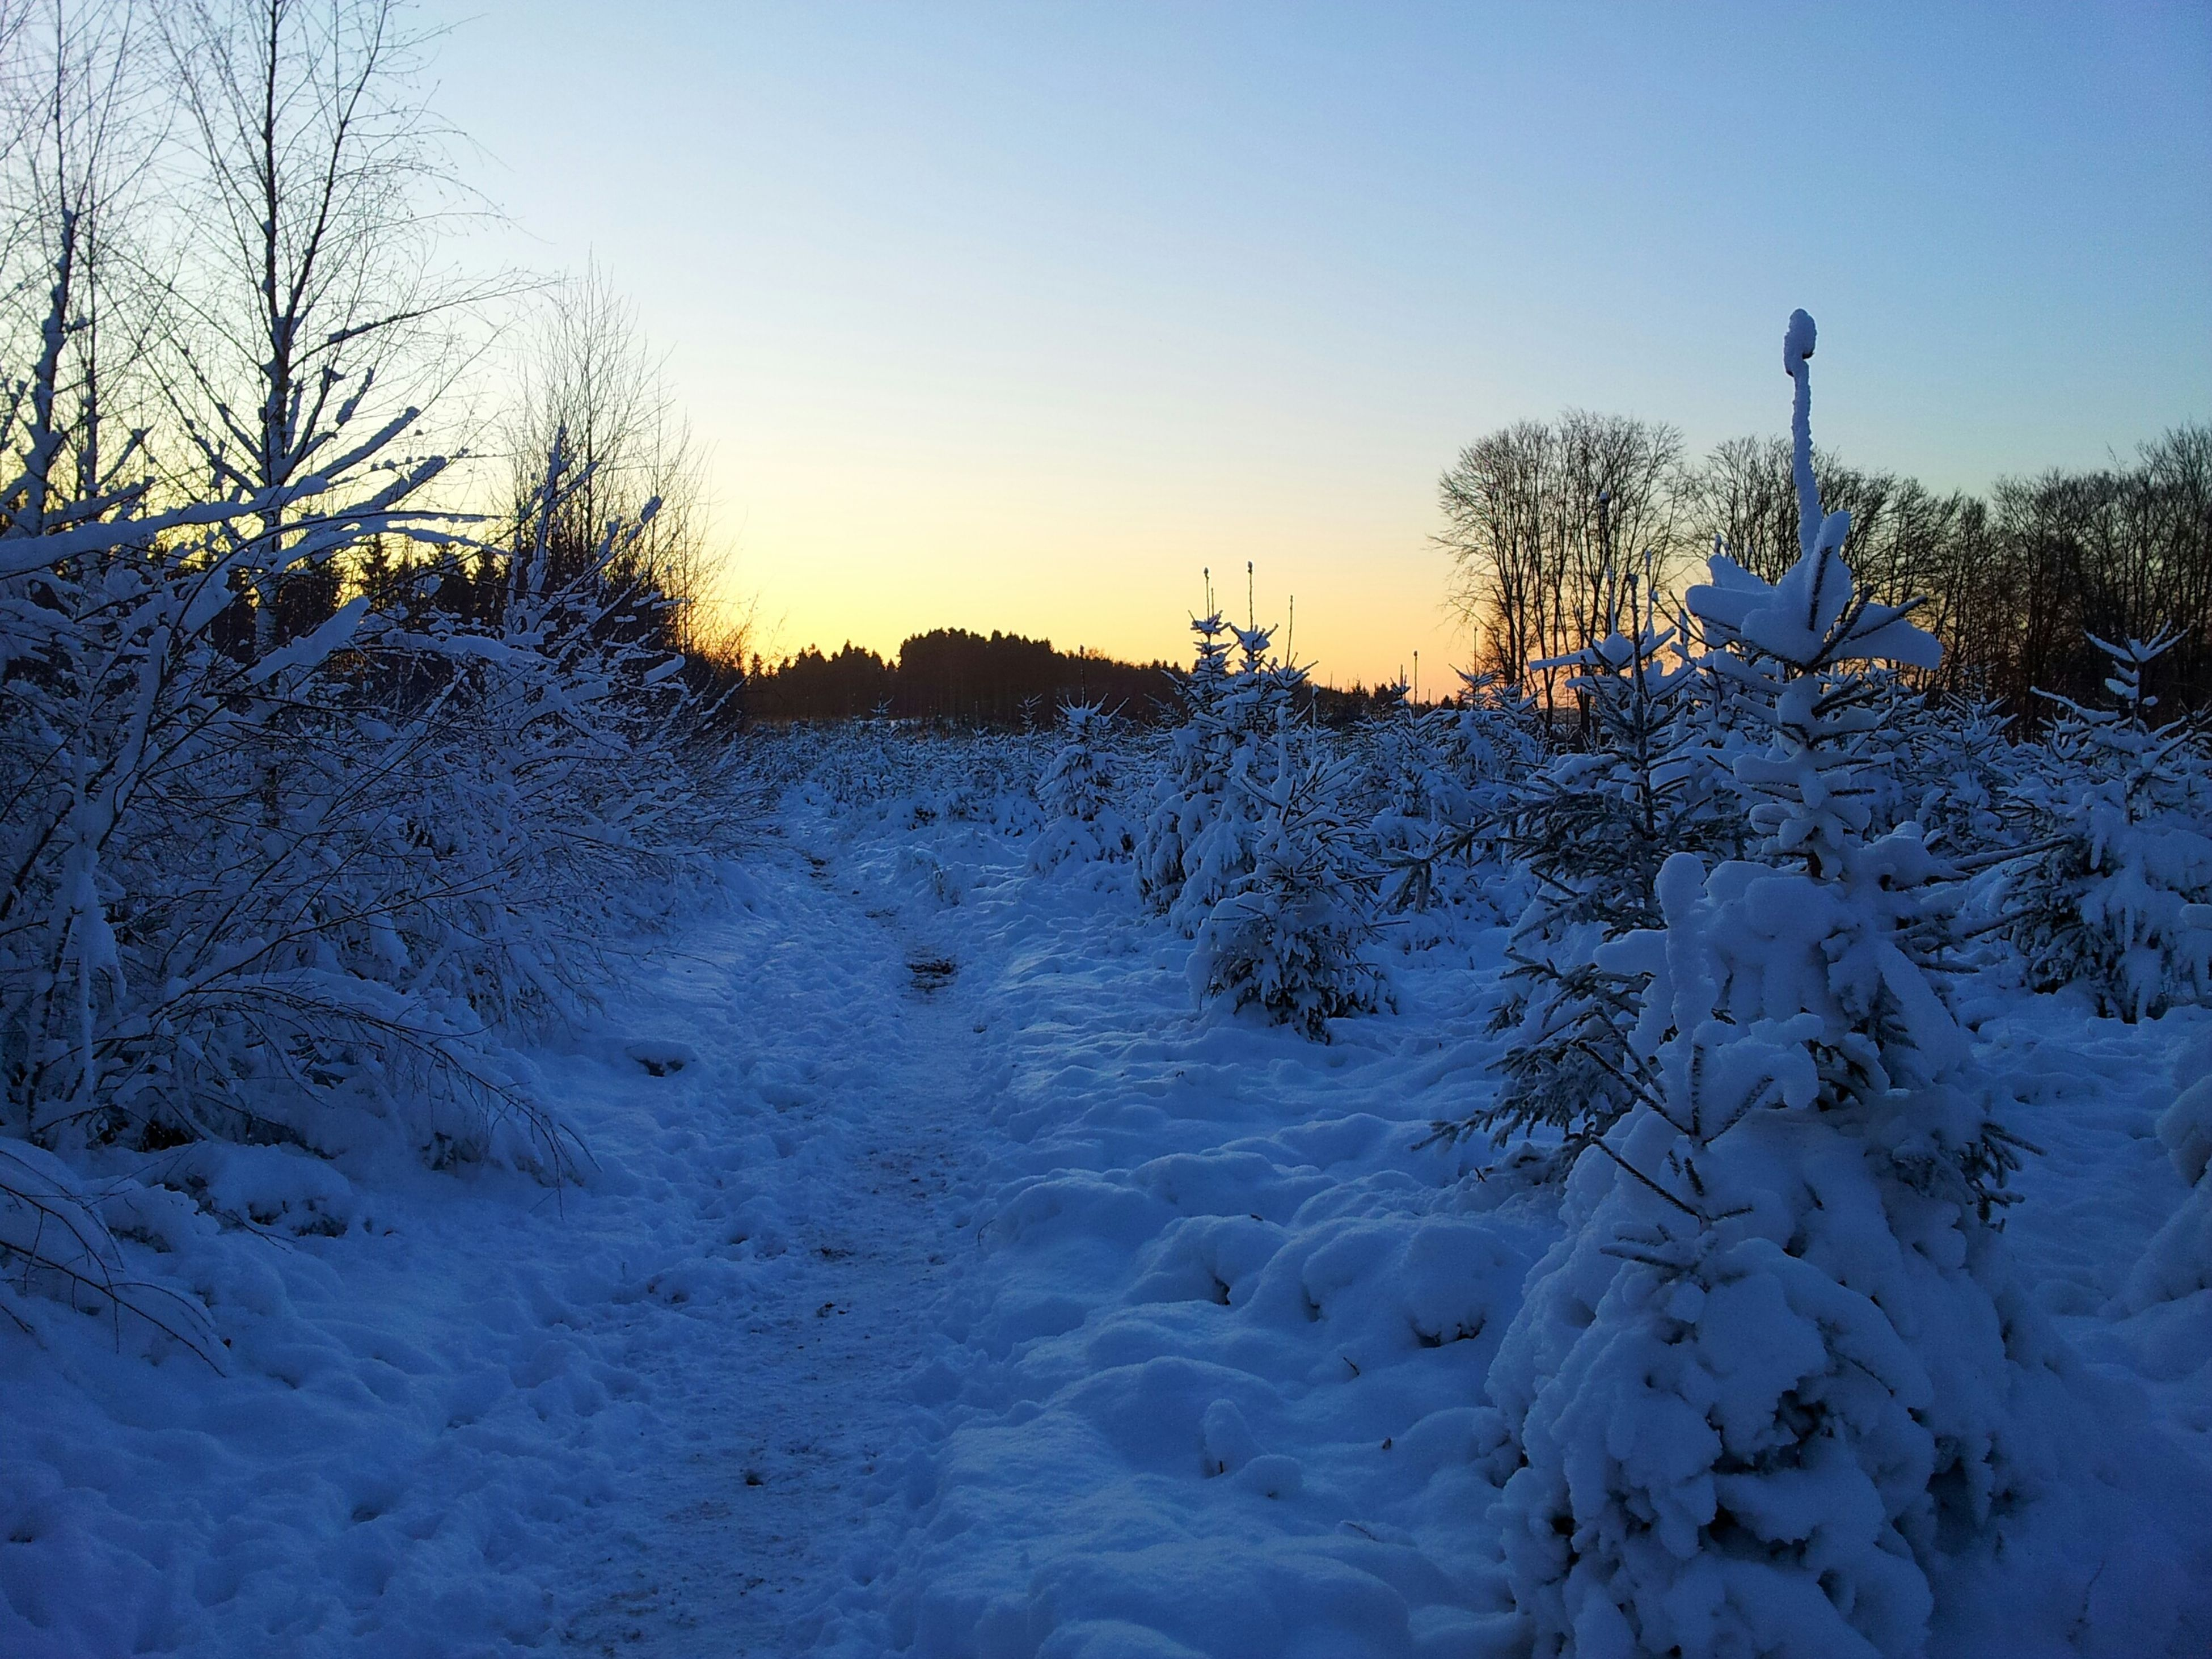 snow, winter, cold temperature, season, clear sky, weather, tranquil scene, tranquility, frozen, covering, scenics, nature, beauty in nature, landscape, bare tree, tree, field, sunset, copy space, sky